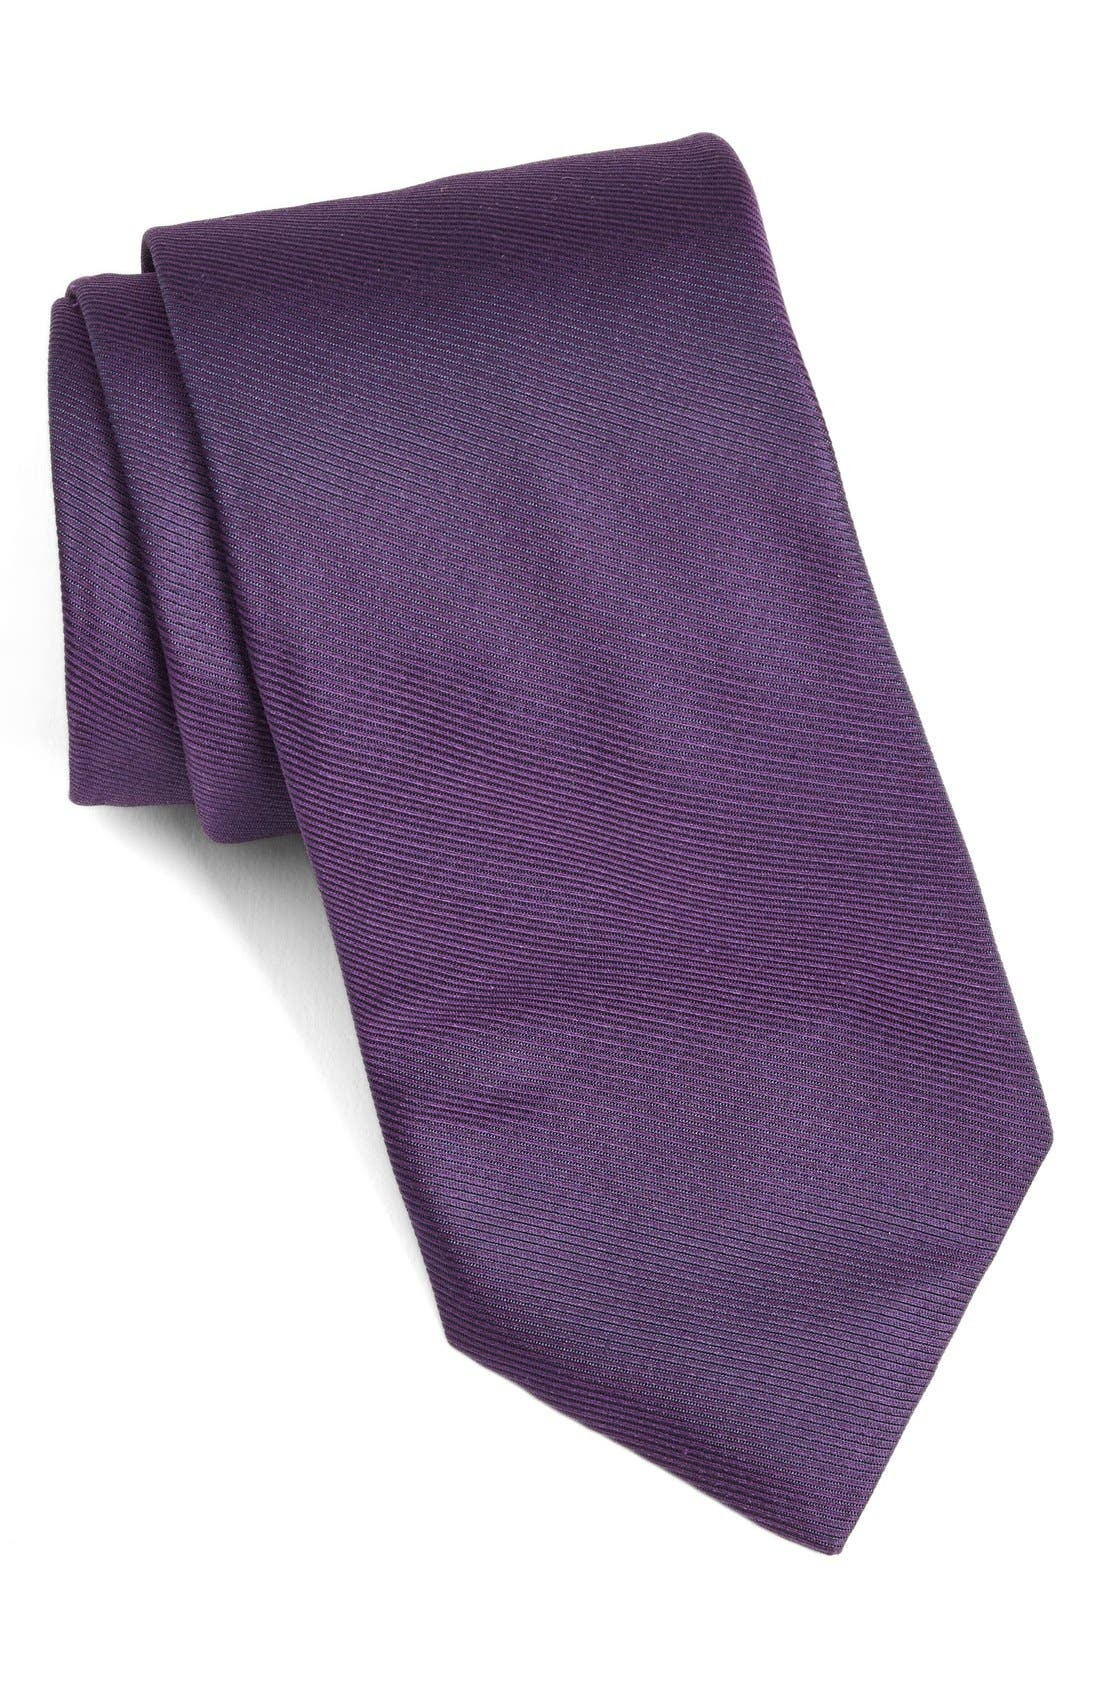 Solid Woven Silk Tie,                             Main thumbnail 6, color,